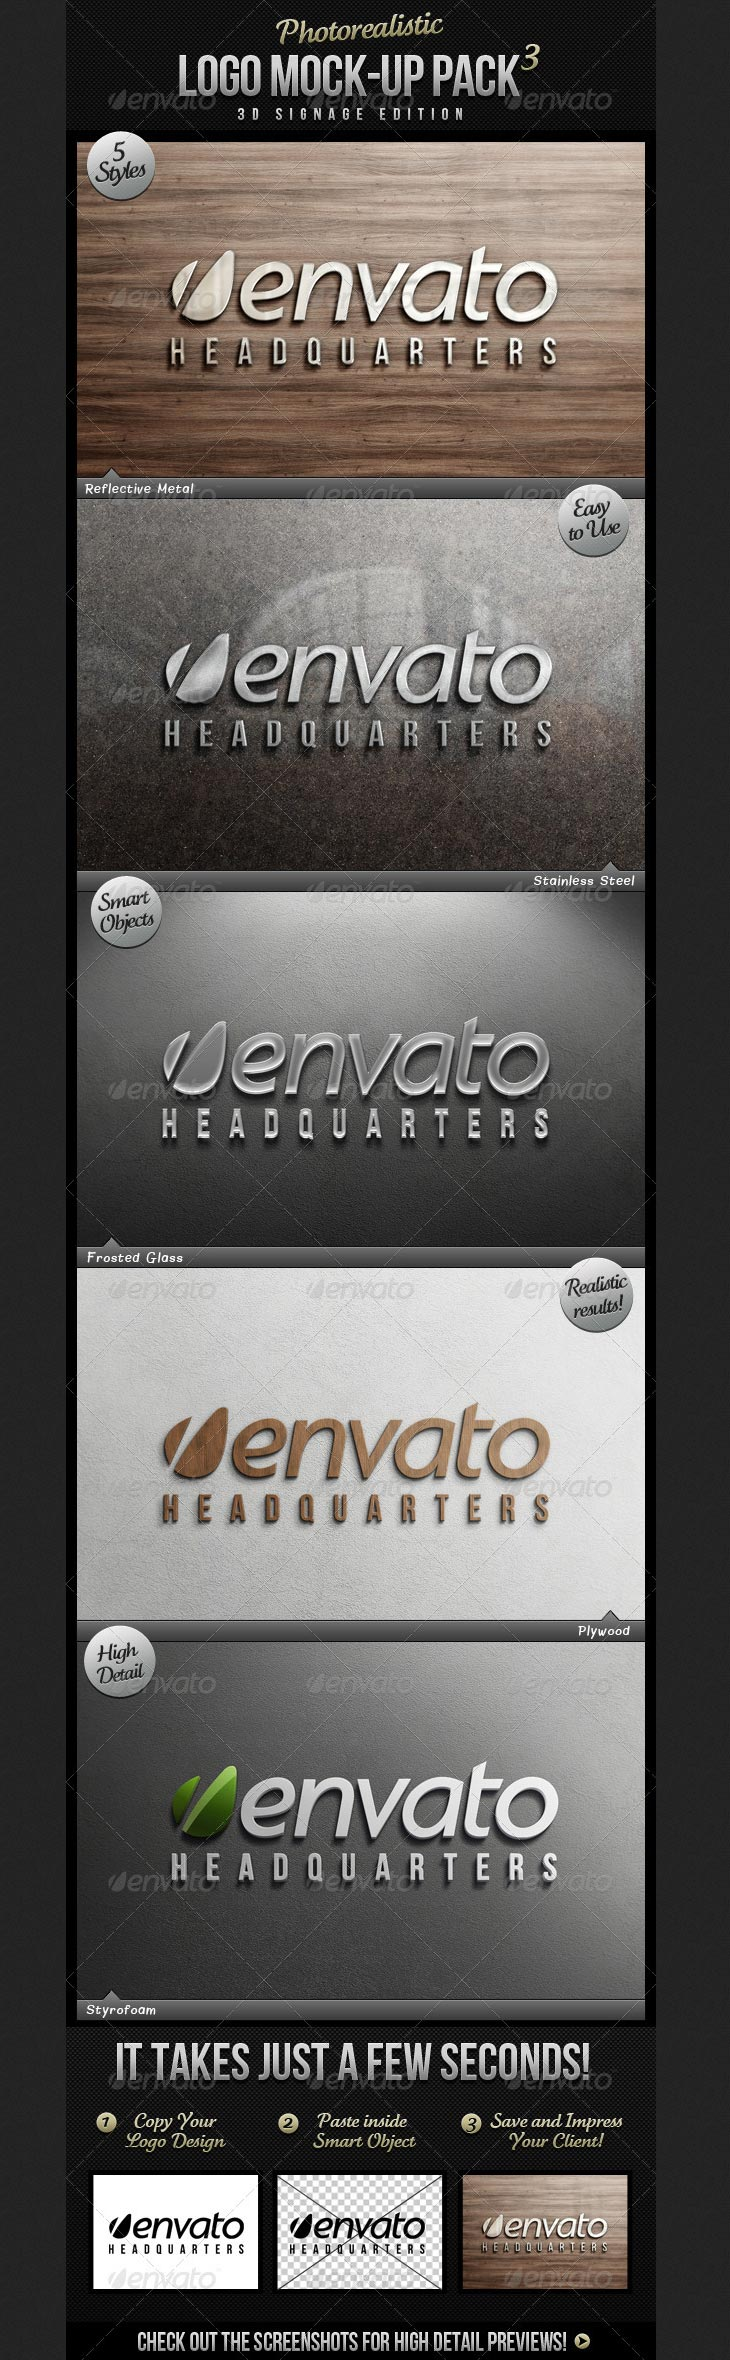 Photorealistic Logo Mock-Up Pack 3